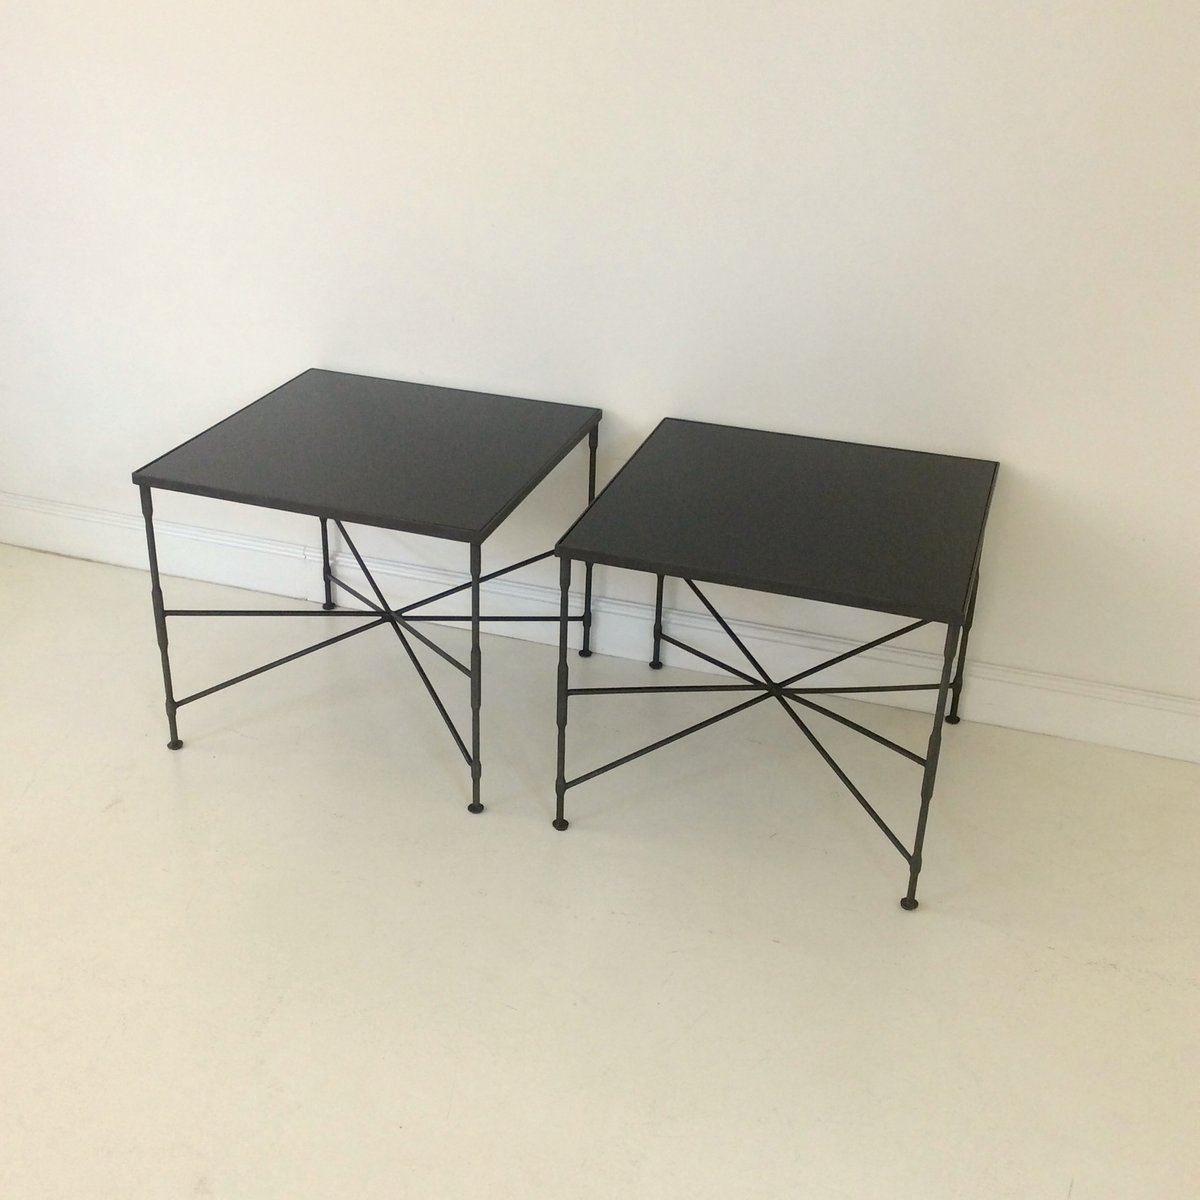 black metal coffee tables 1970s set of 2 for sale at pamono. Black Bedroom Furniture Sets. Home Design Ideas